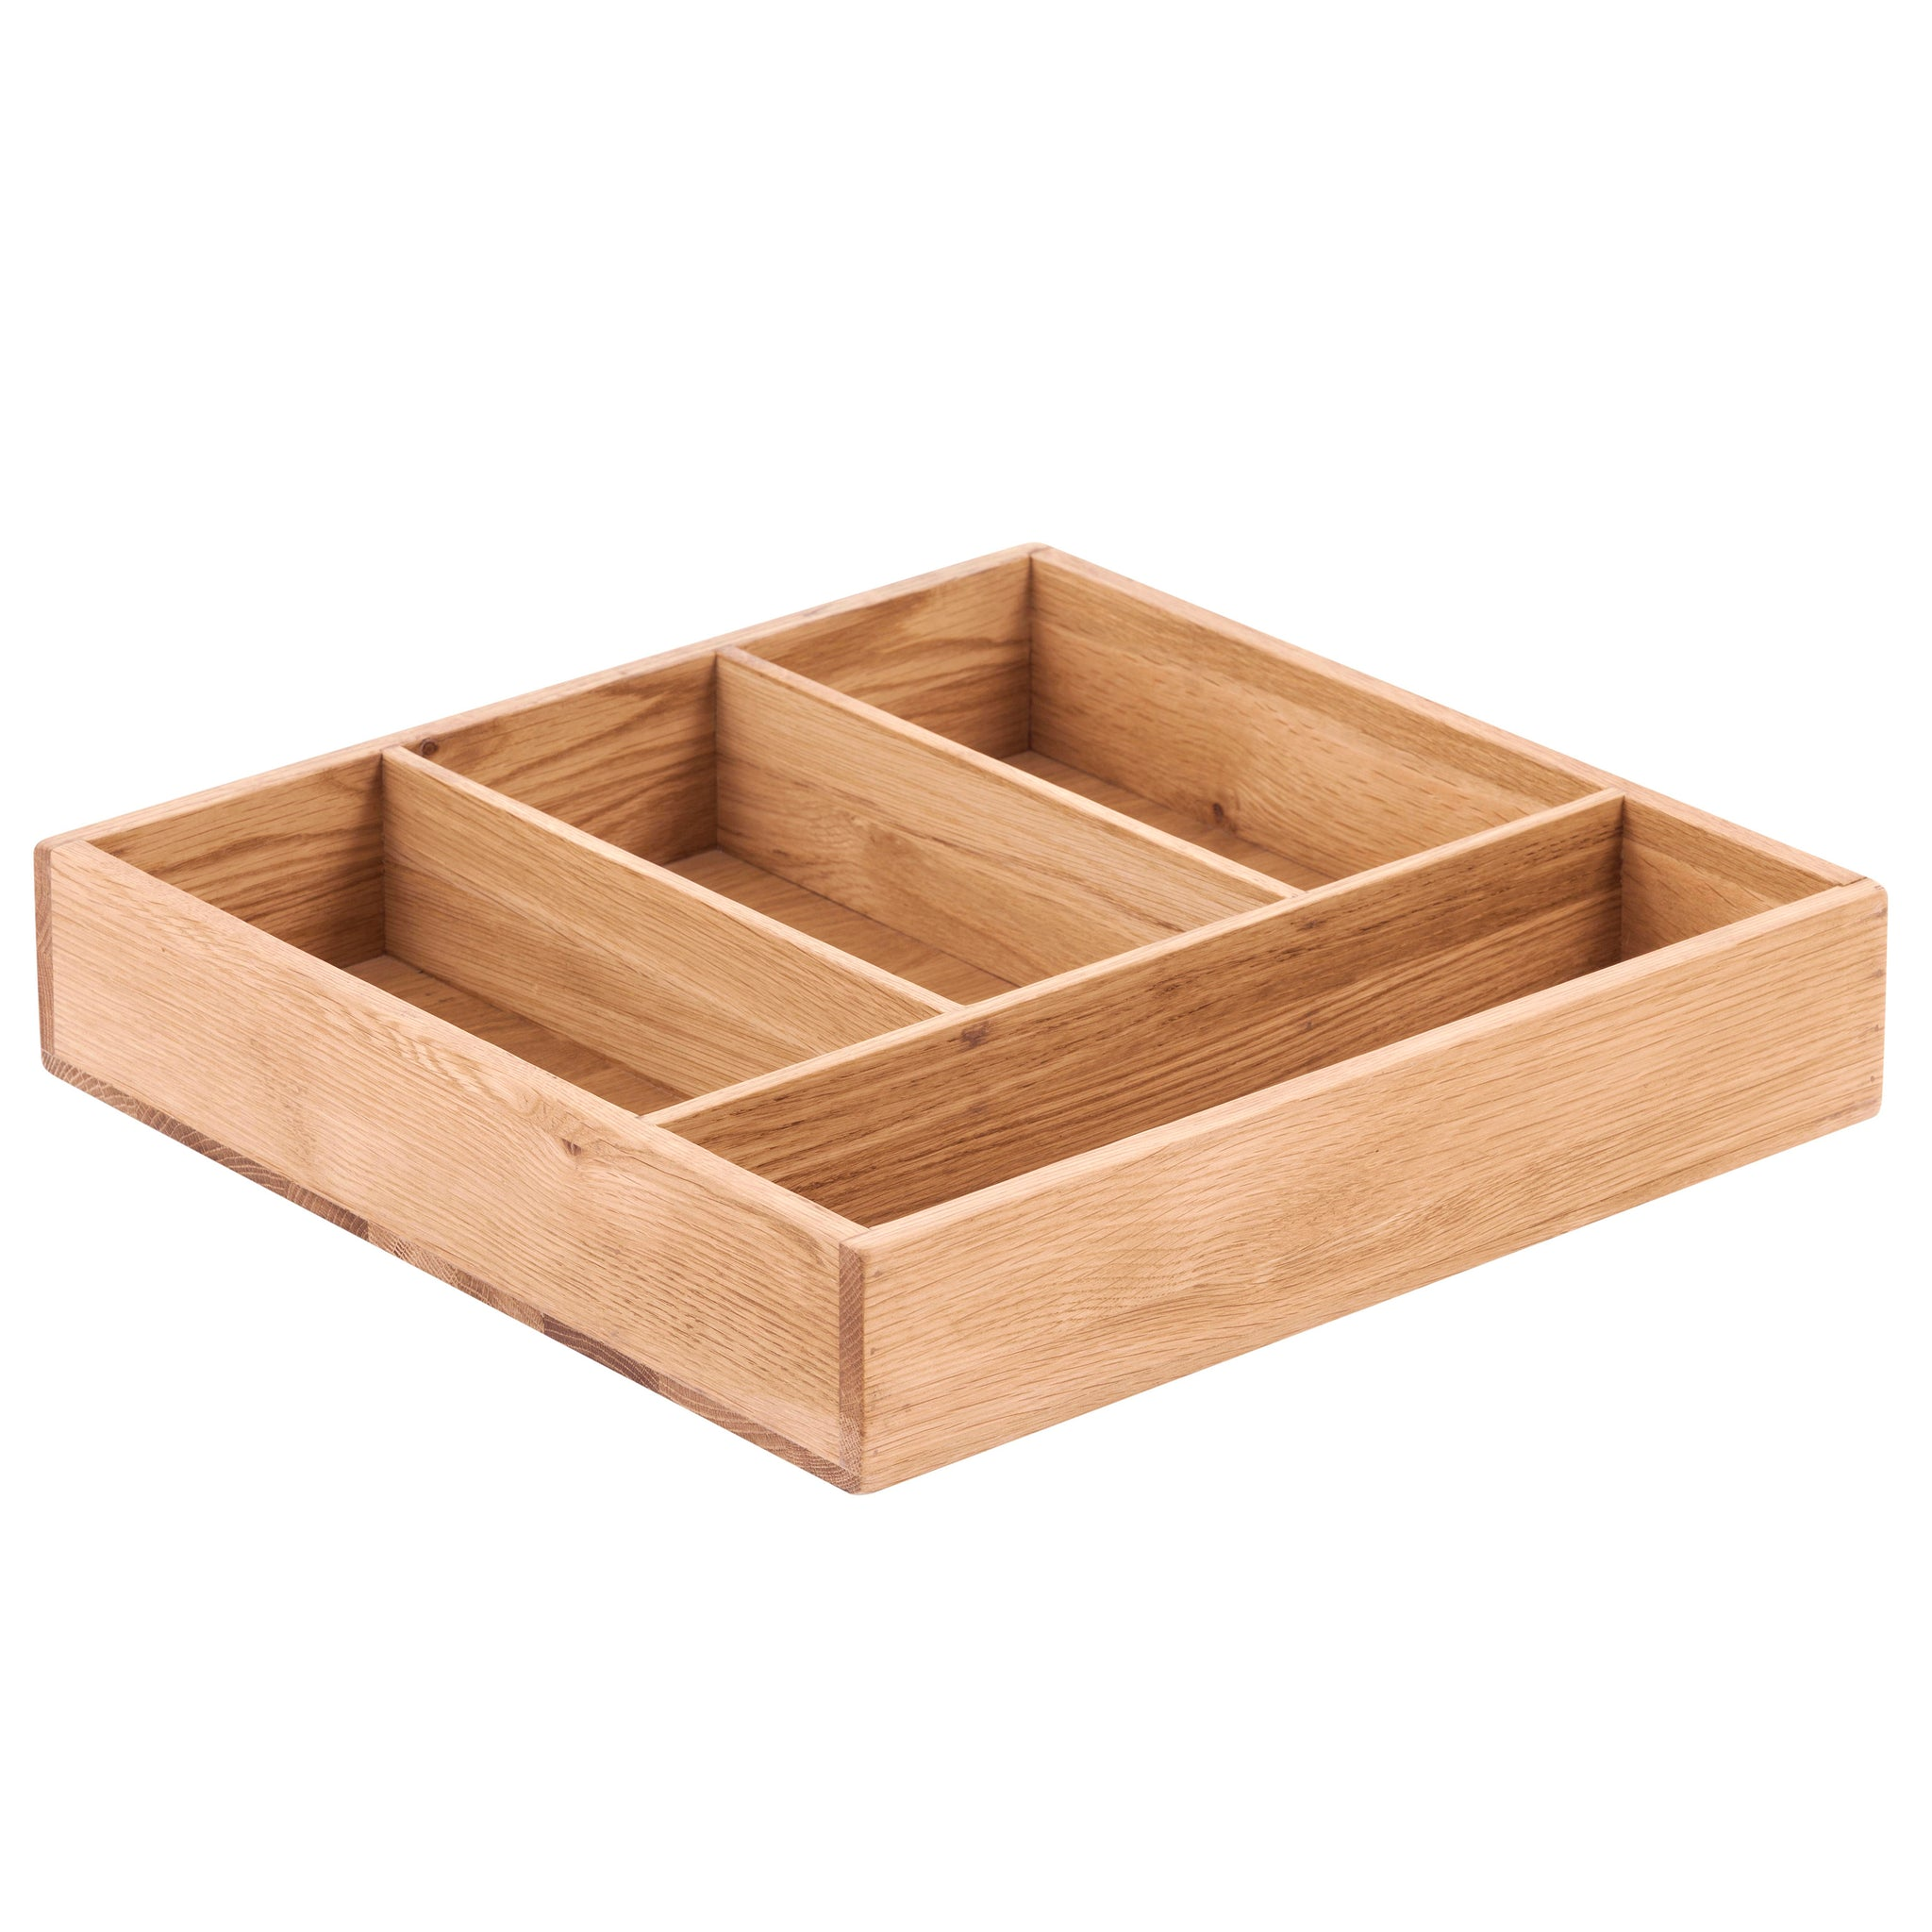 KIC004-K - Solid Oak Cutlery Tray 4 Compartments